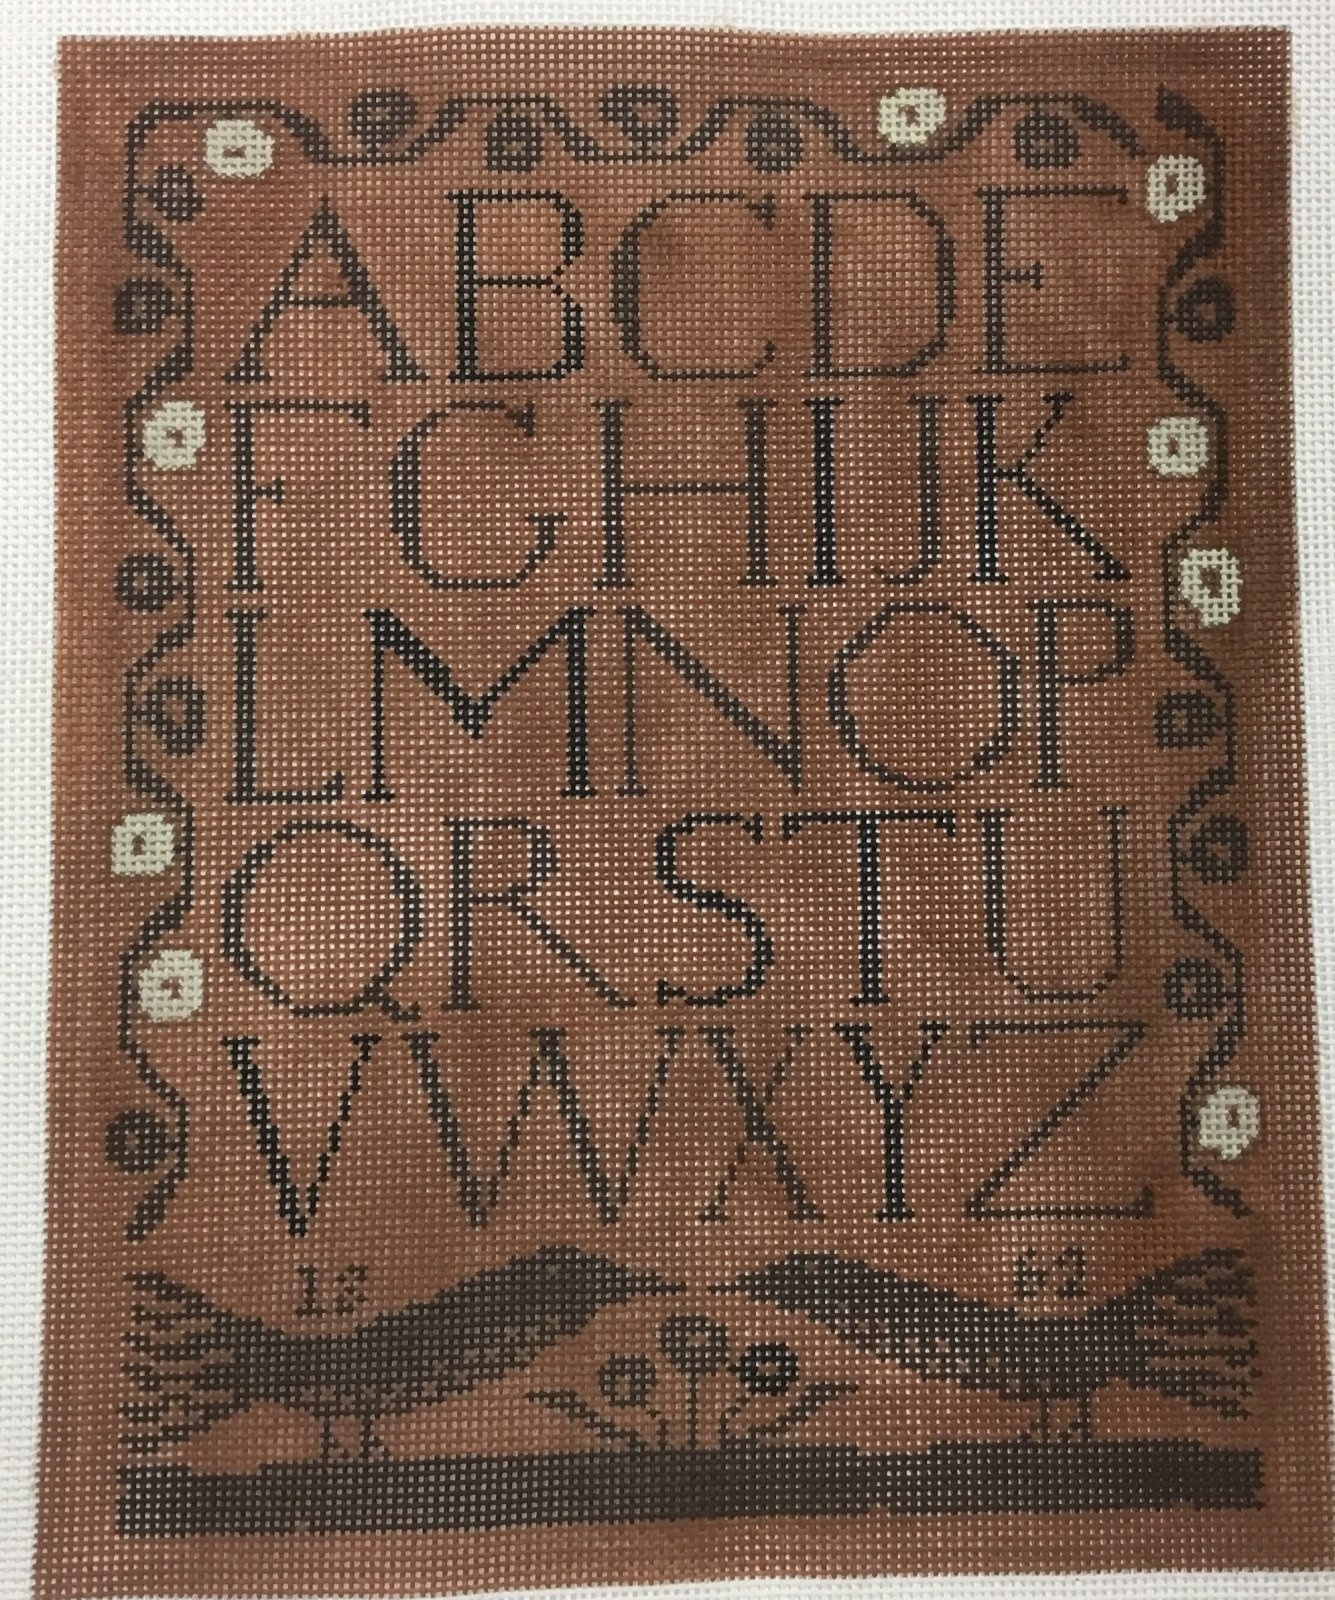 Brown on Brown Sampler,13 ct.,9 1/2x12